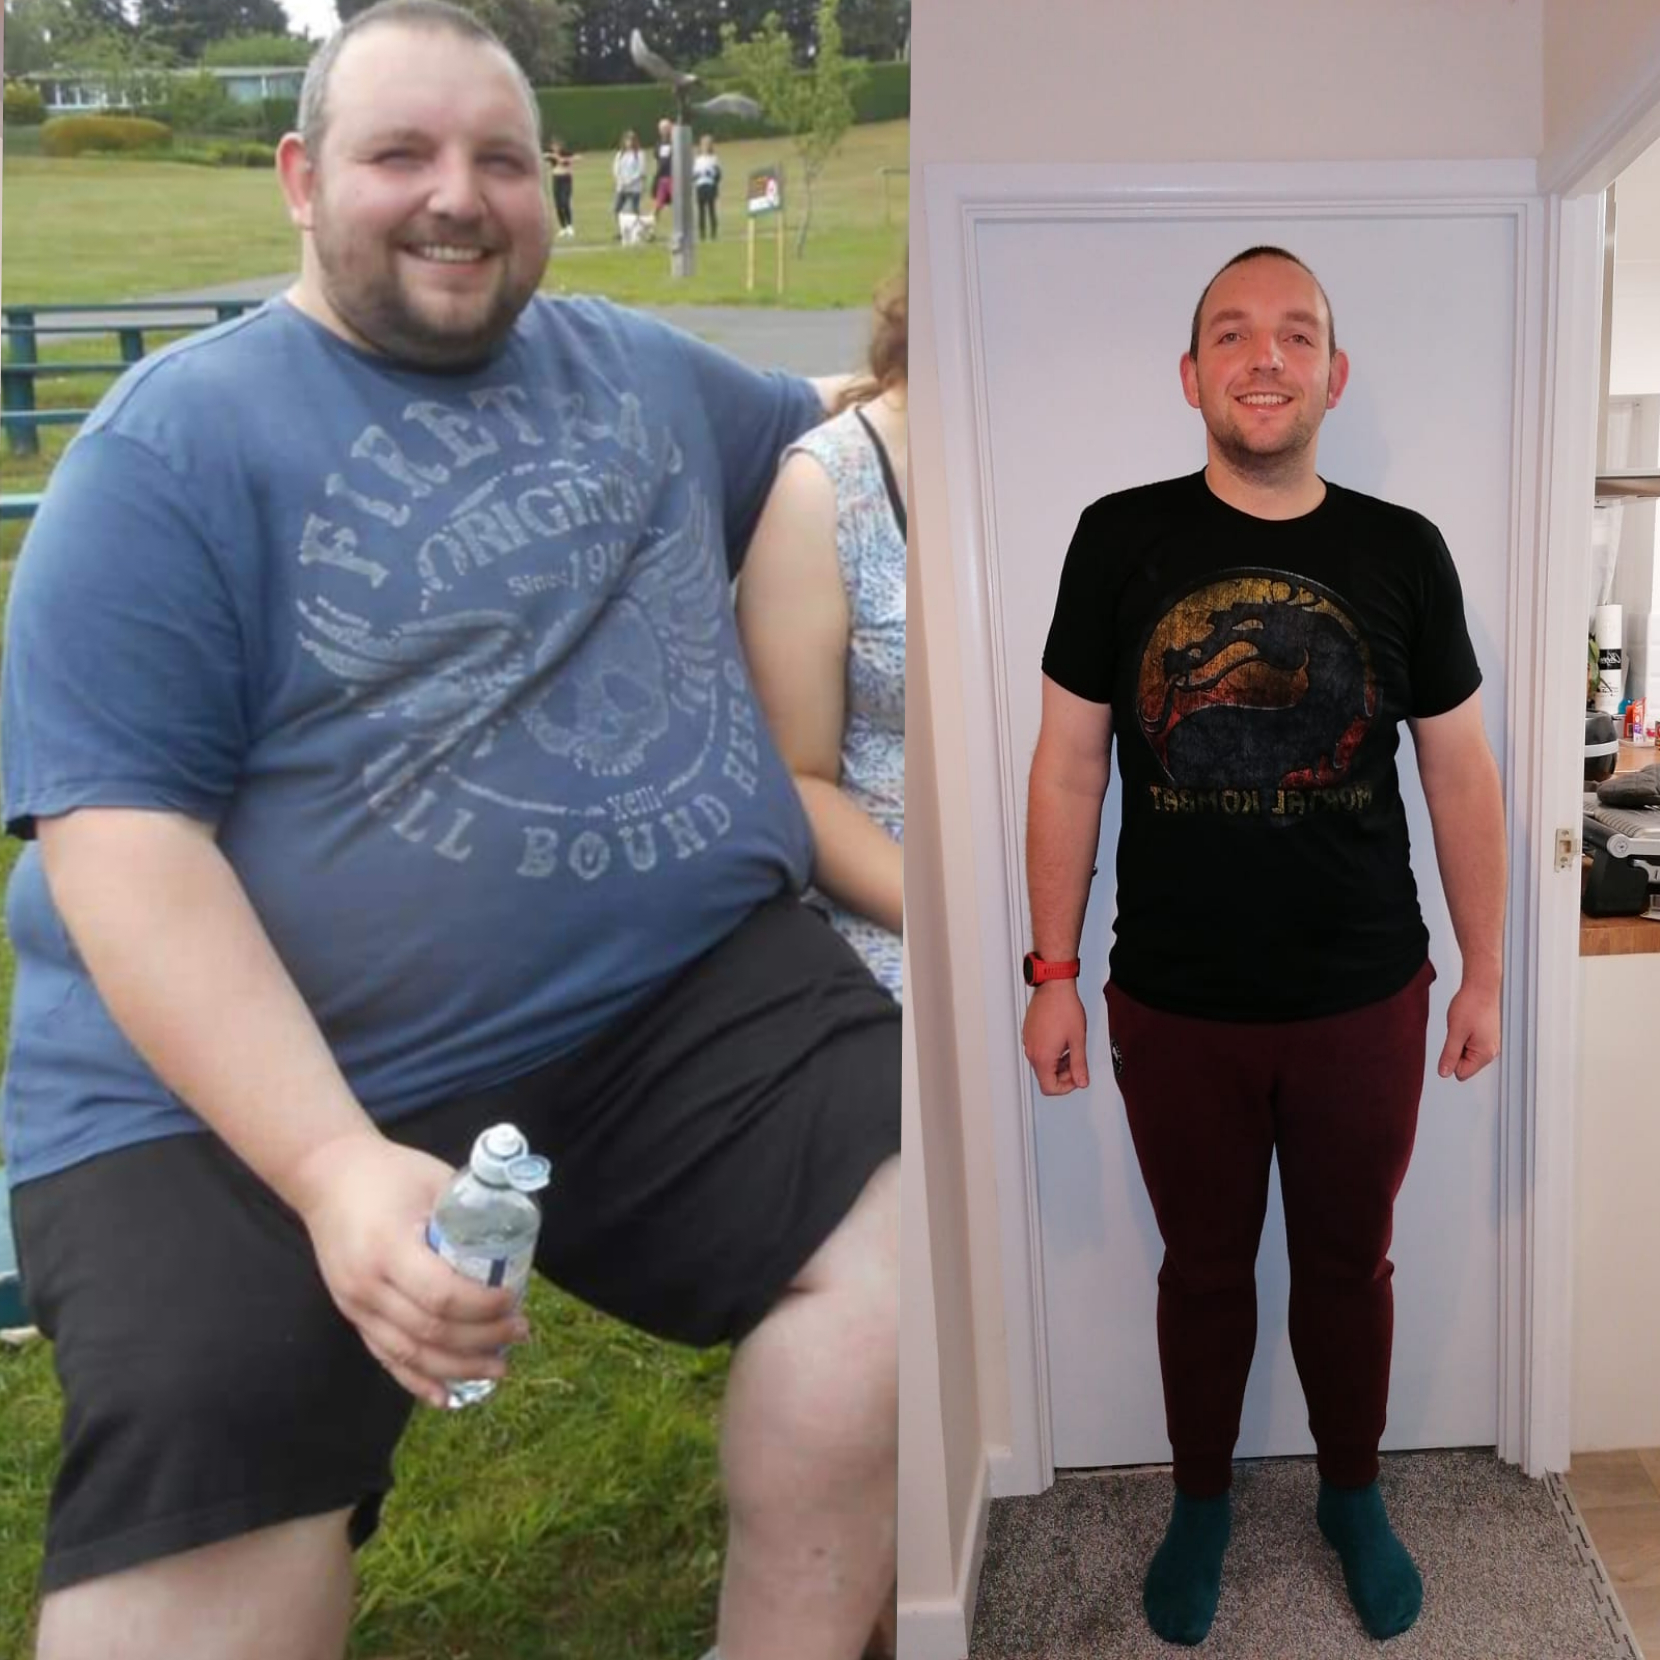 6 feet 2 Male Before and After 216 lbs Fat Loss 444 lbs to 228 lbs